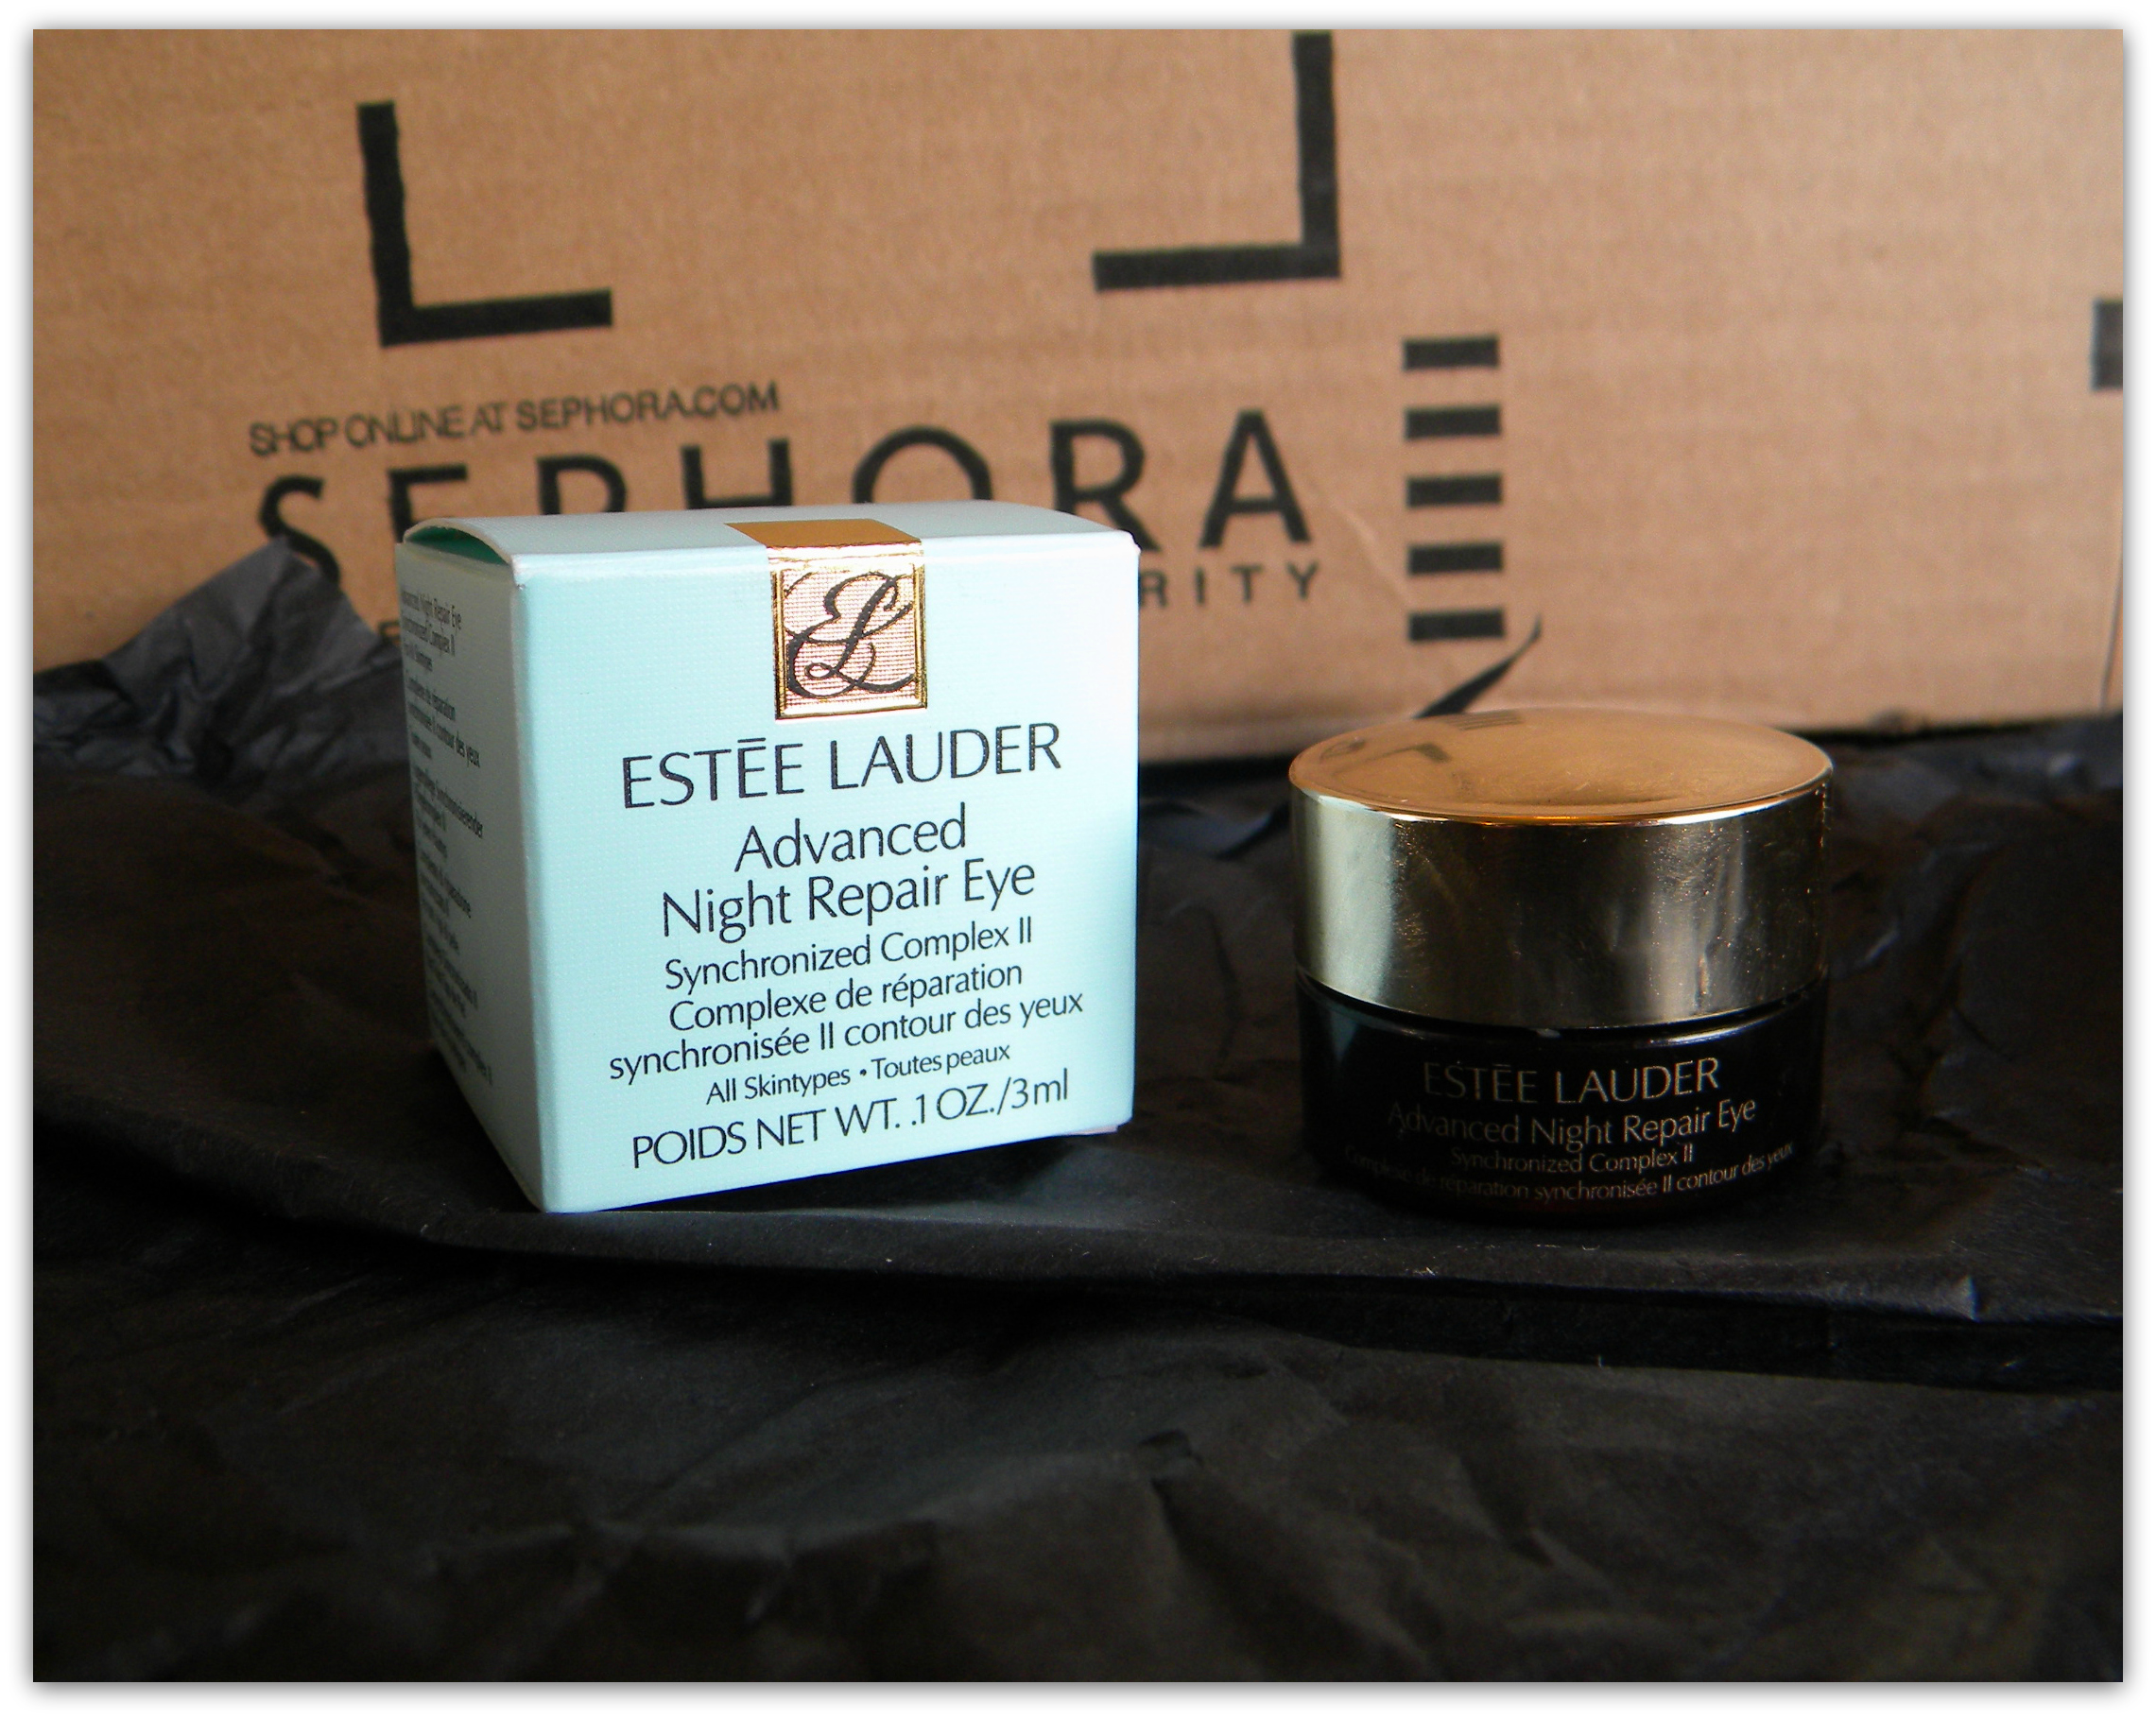 Estee Lauder Eye Cream www.jilliandanielle.com